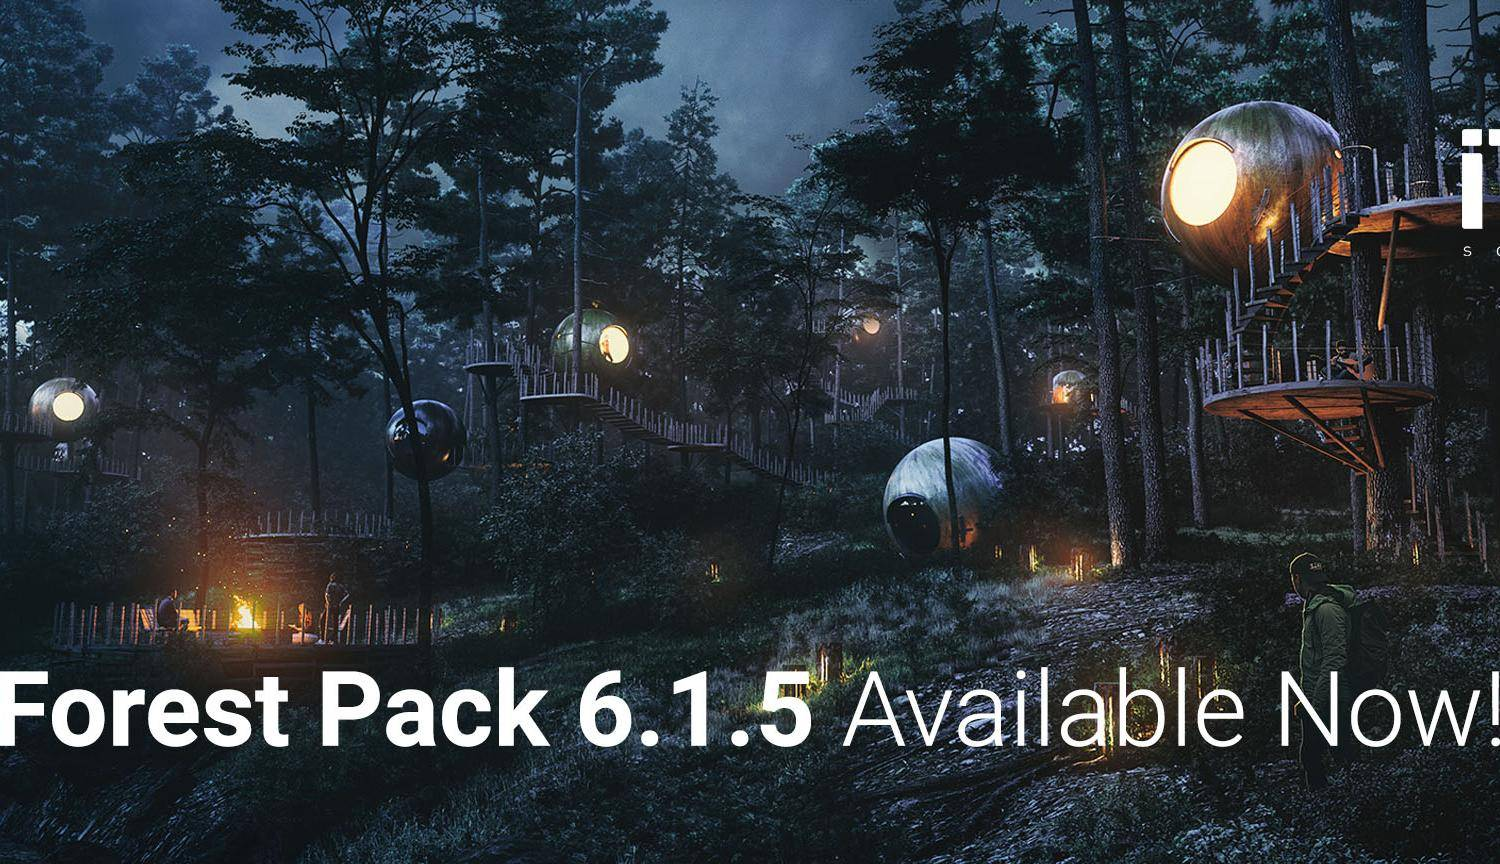 Forest Pack 6.1.5 released